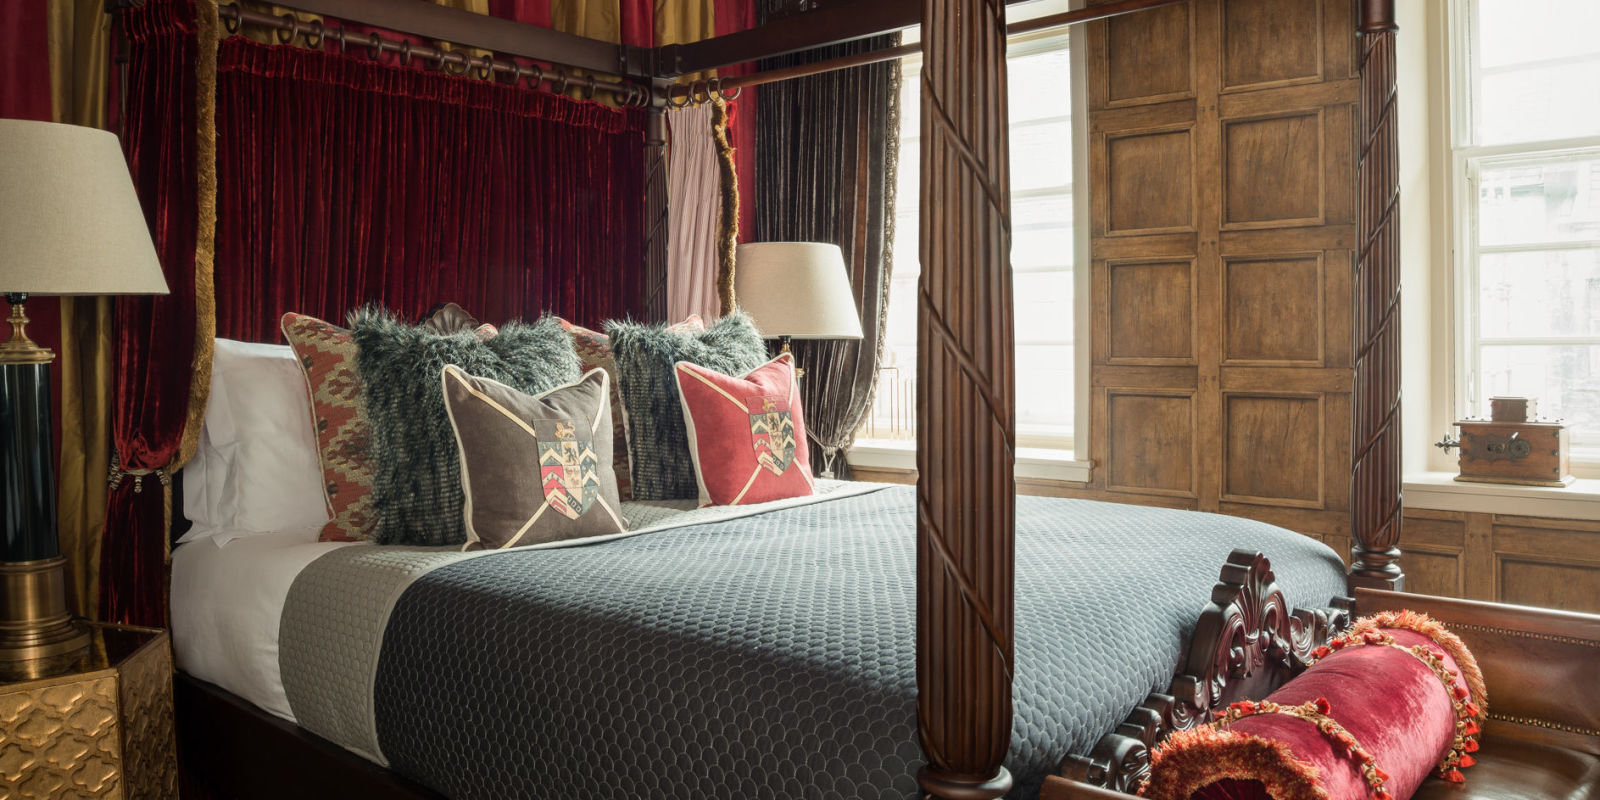 Hogwarts Bedroom You Can Now Stay In This Luxury Harry Potter Themed